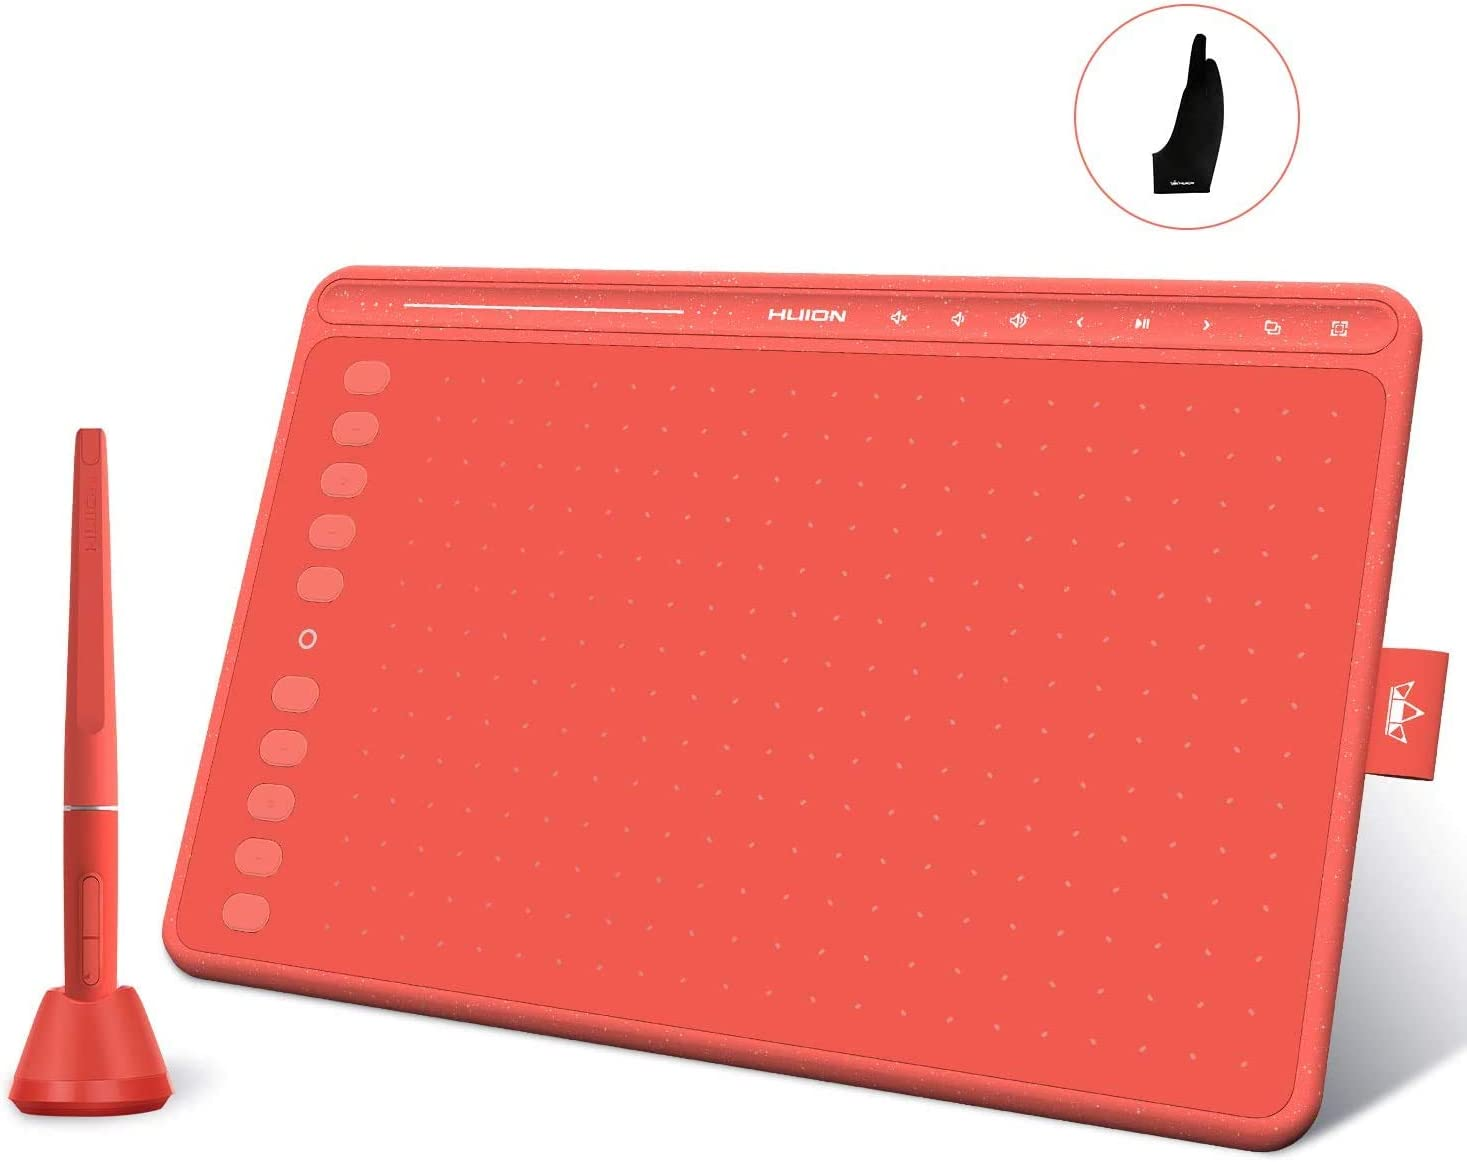 Boston Mall 2020 HUION HS611 Red Graphics Tablet Dealing full price reduction Support Drawing Android wit